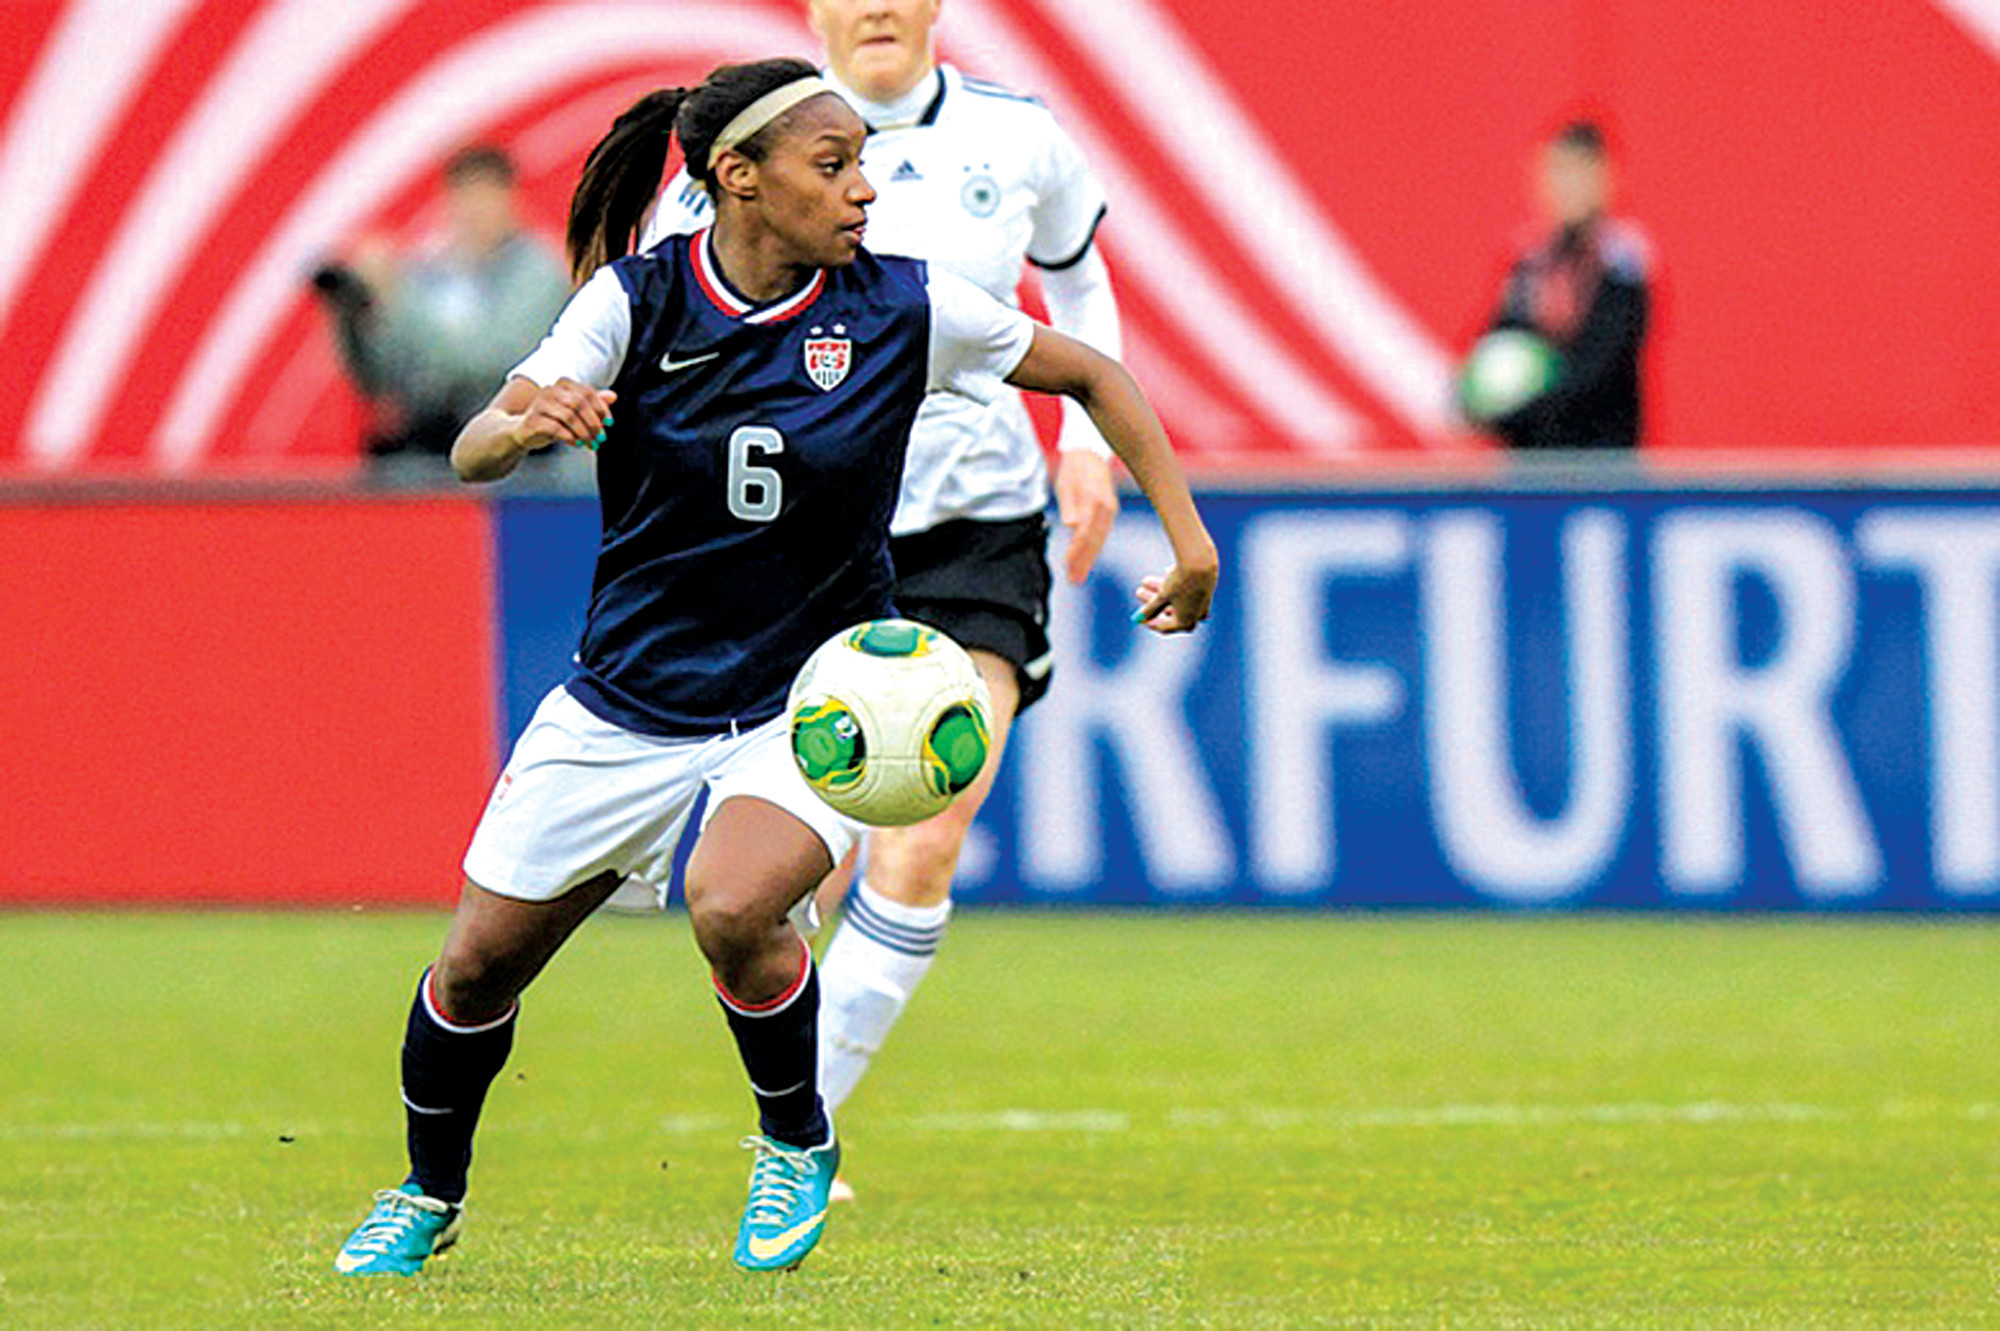 In addition to being MVP, Crystal Dunn also received the Golden Boot for most points scored in the season.